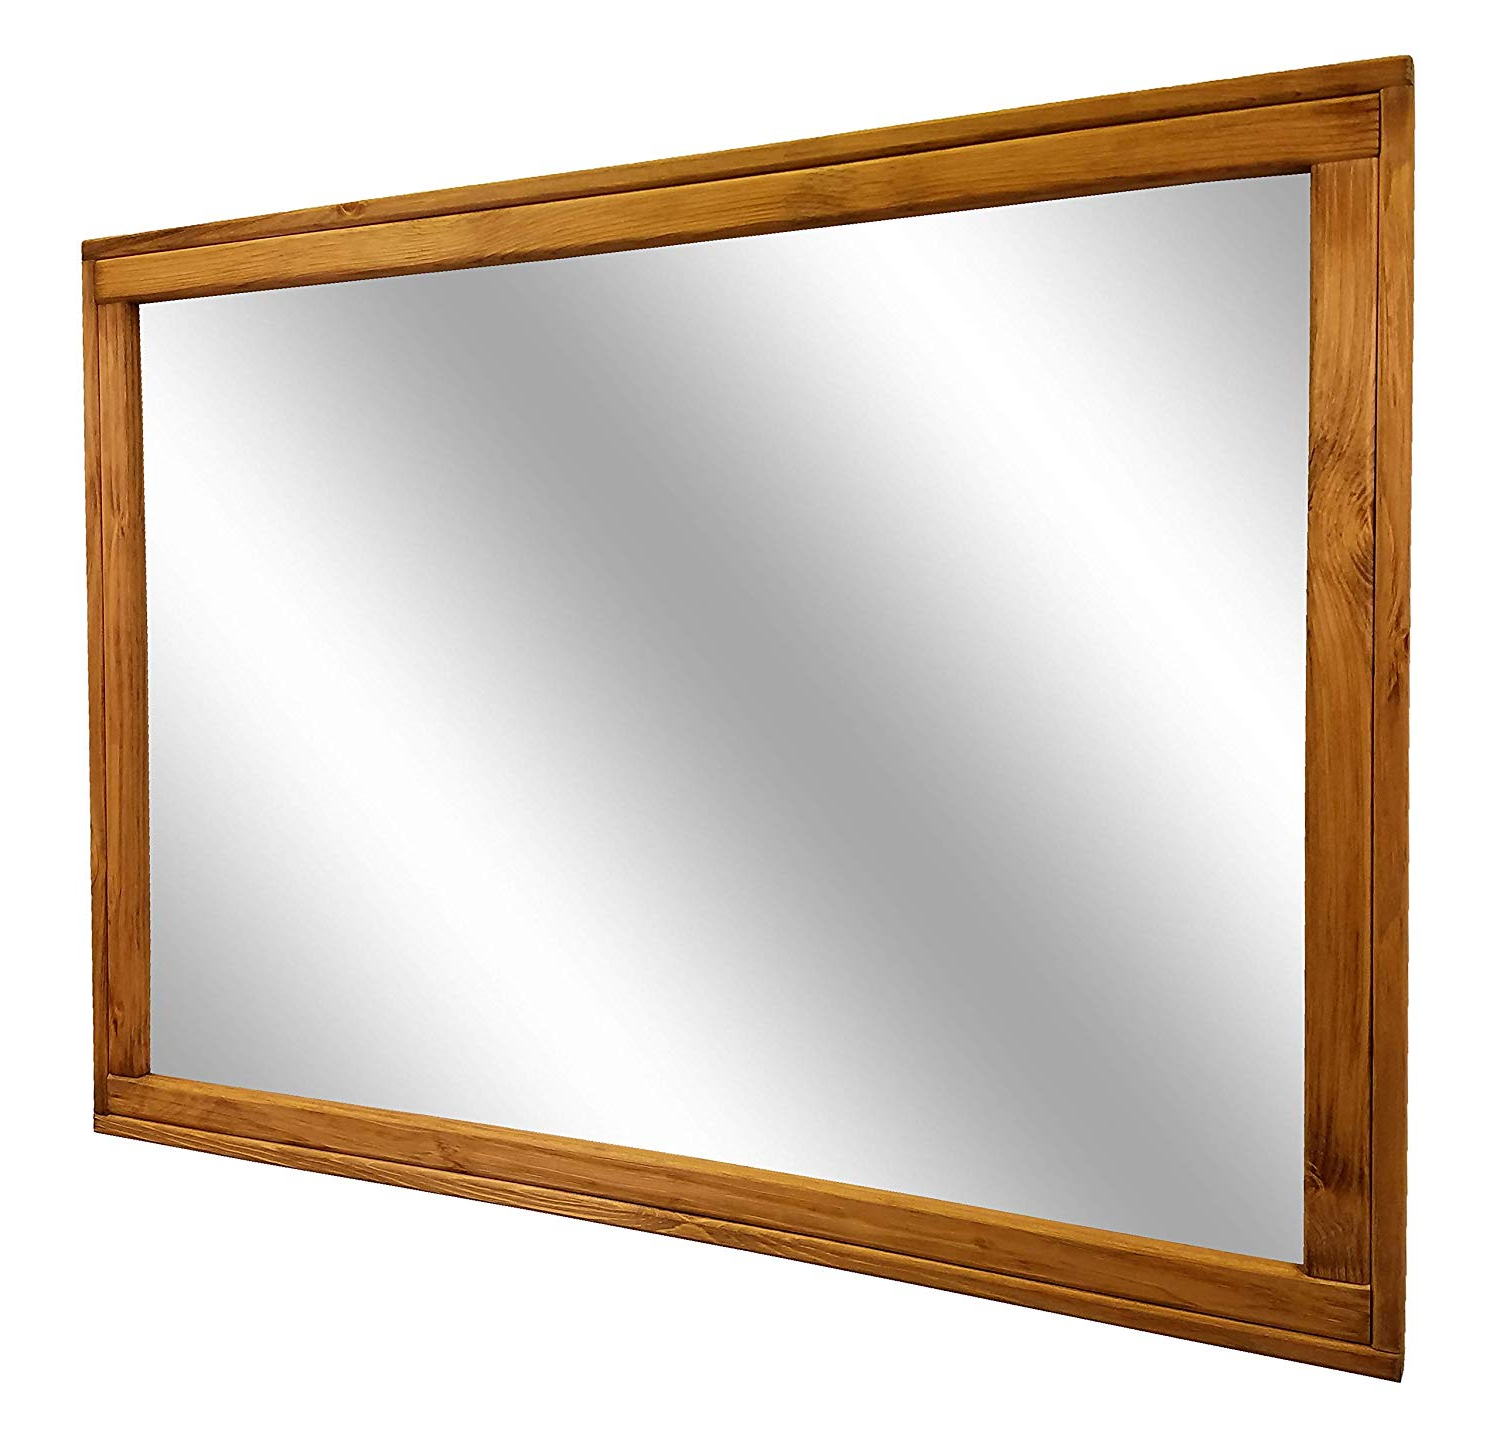 Trendy Amazon: Vanity Mirror/wall Mirrors/bathroom Mirror/large With Regard To Sydney Large Wall Mirrors (View 17 of 20)